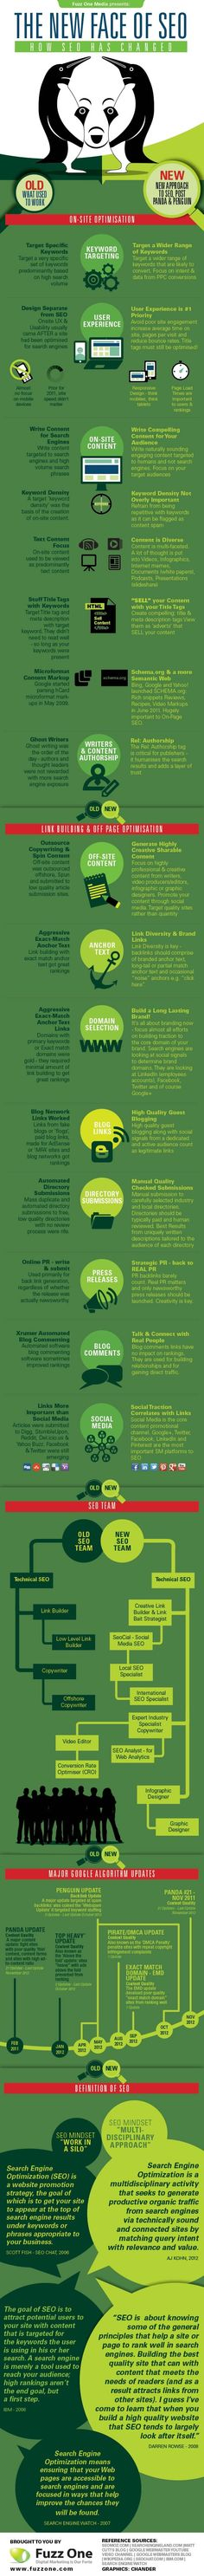 #SEO Strategies: Toss the Old and Embrace The New #Infographic #Marketing #Content #Web #Design #Link #Building #Authorship